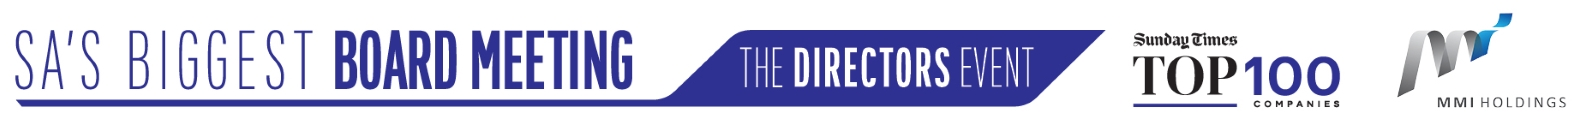 The Directors Event Logo